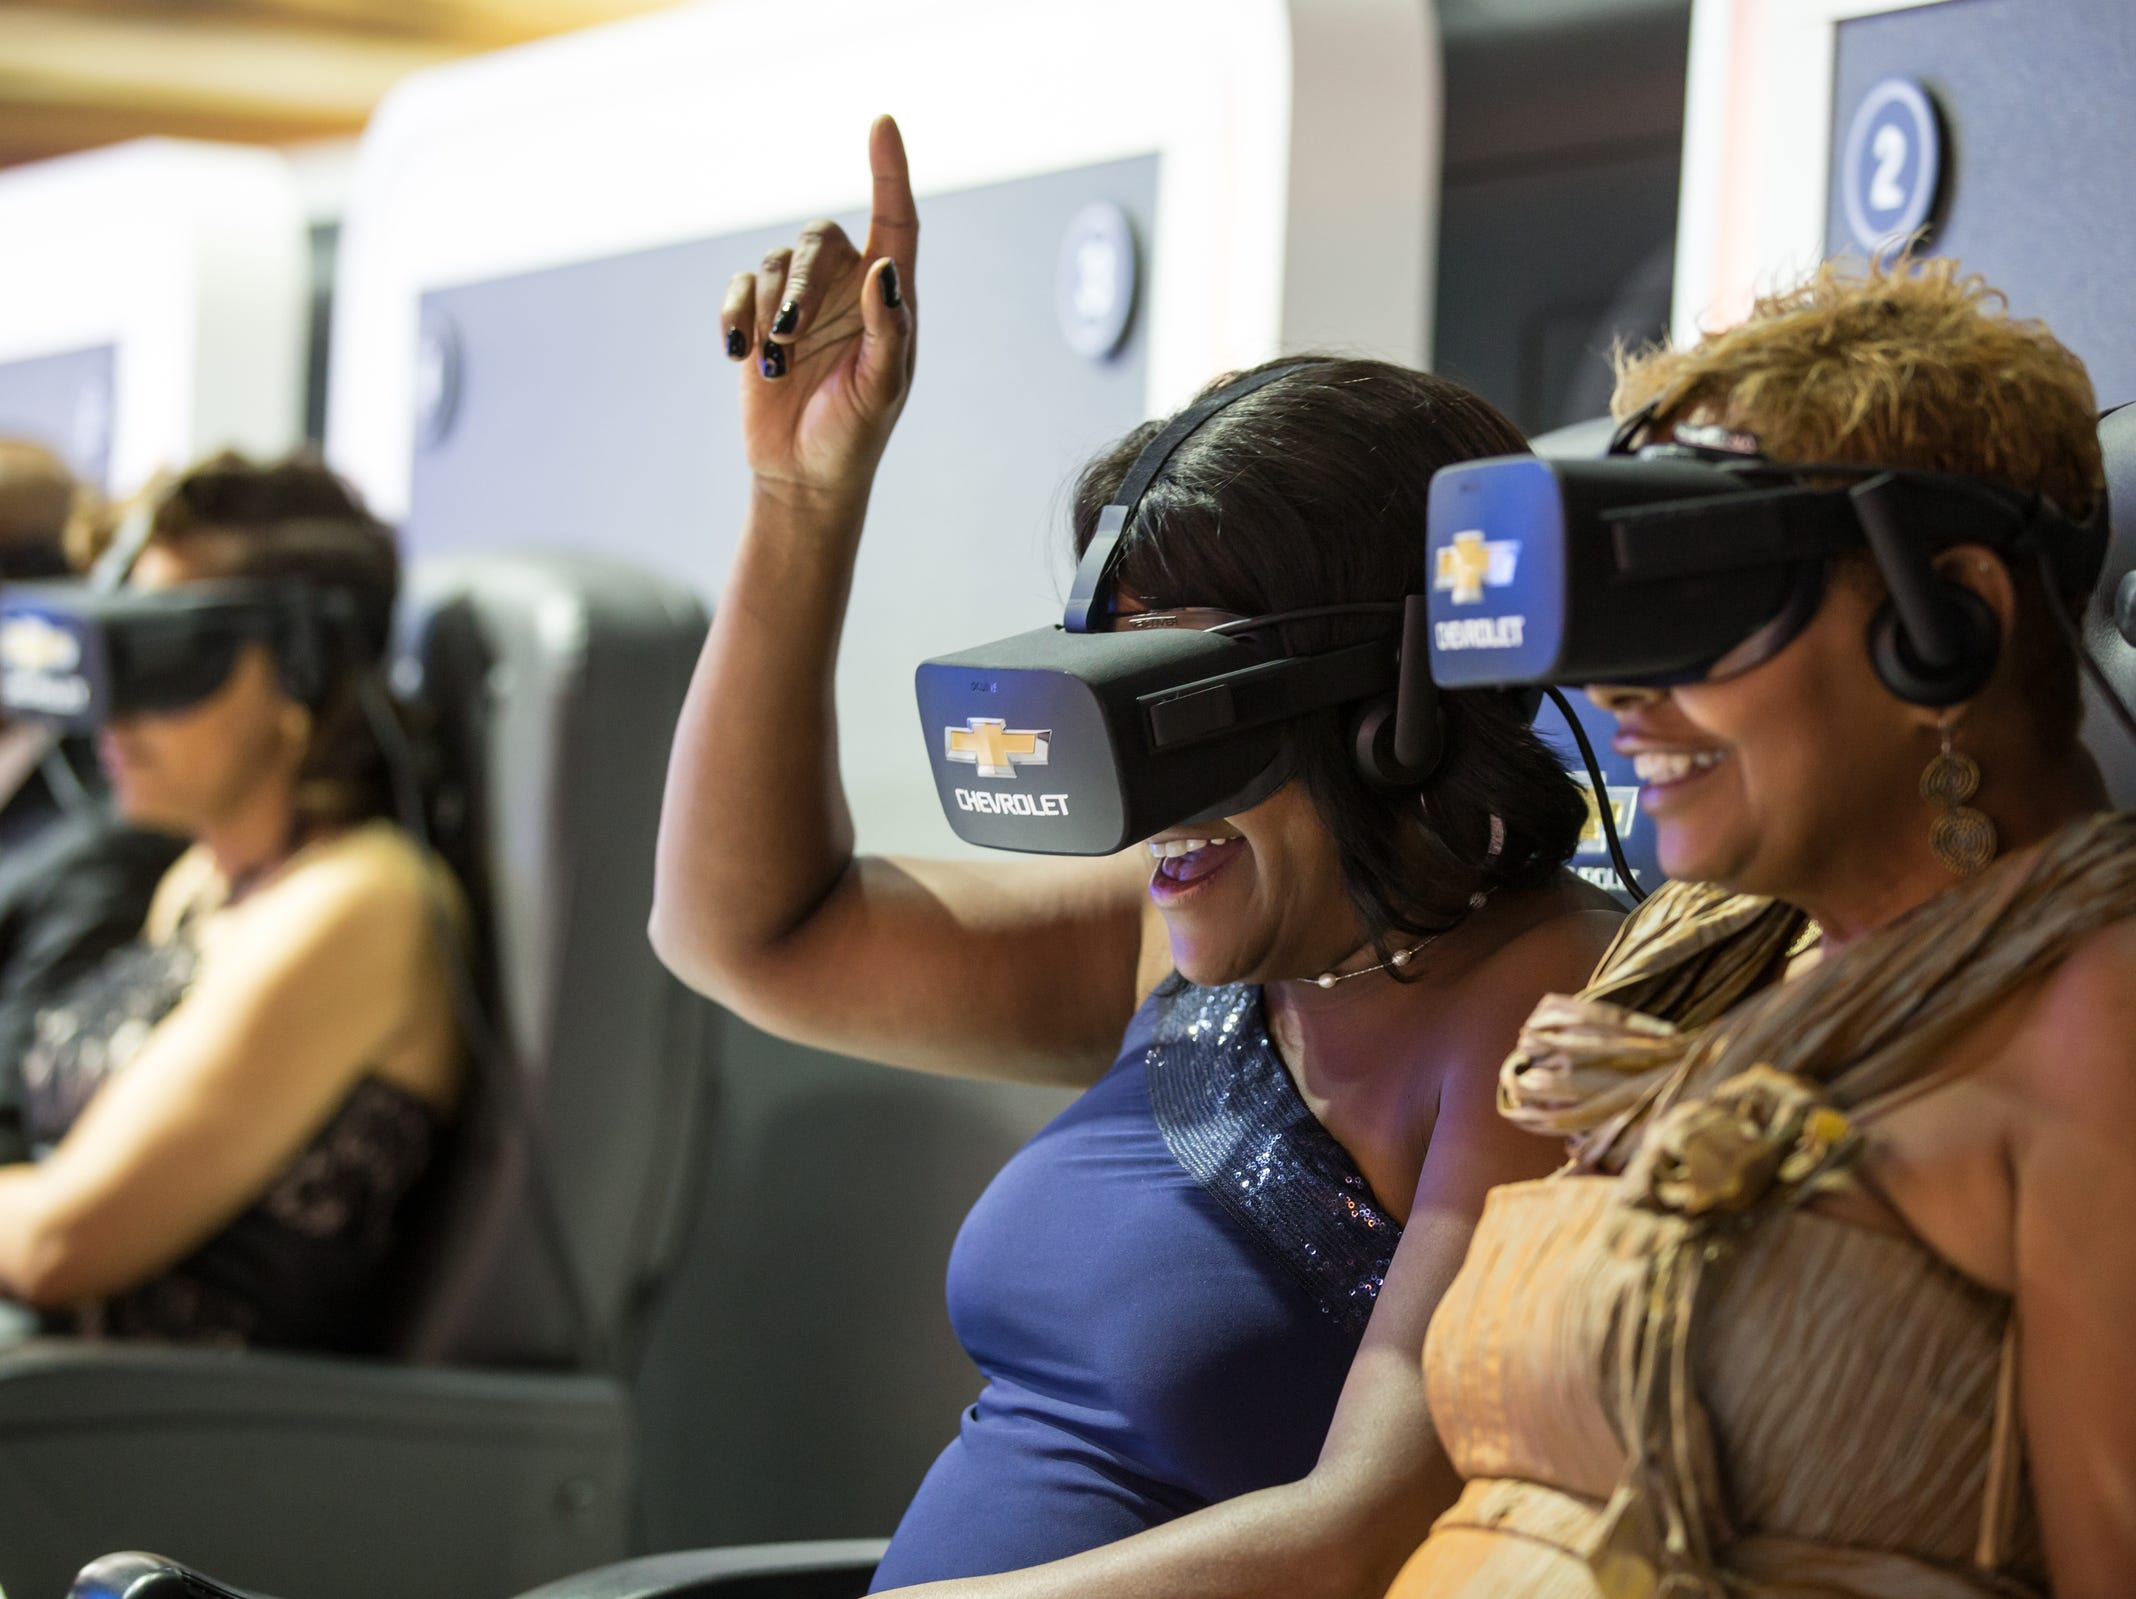 Kim Lindsey-Feagin (right) of Detroit and Donna Mills of Detroit, take a ride on a Virtual Dynamics Lab 4D Experience in the Chevrolet area during the 2019 North American International Auto Show Charity Preview at Cobo Center in Detroit on Friday, January 18, 2019.